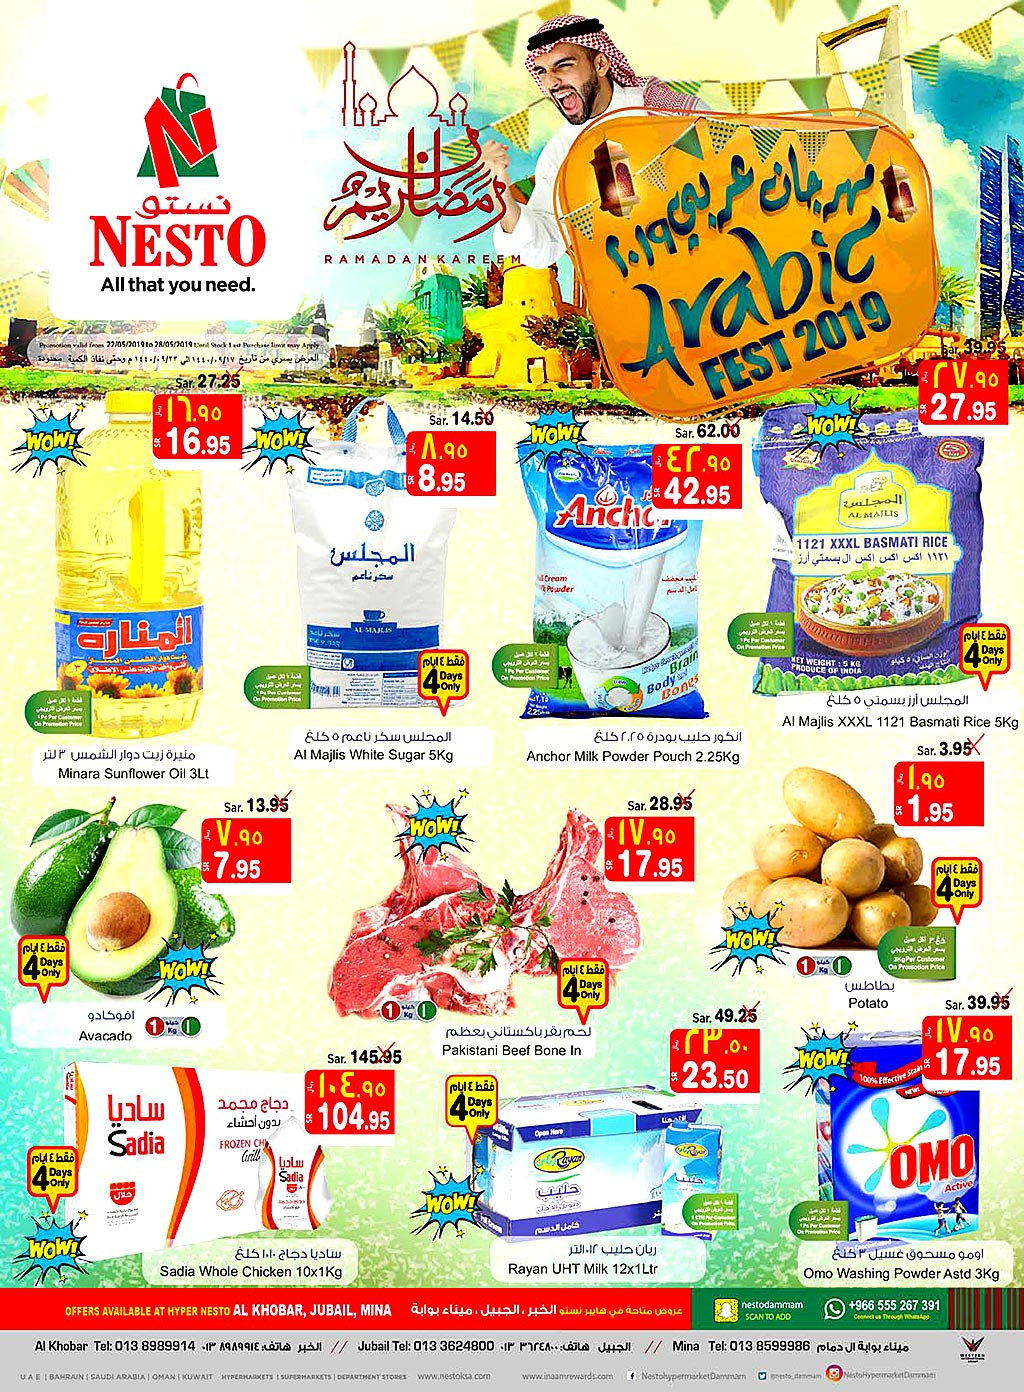 nesto-market offers from 22may to 28may 2019 page number 1 عروض نستو ماركت من 22 مايو حتى 28 مايو 2019 صفحة رقم 1